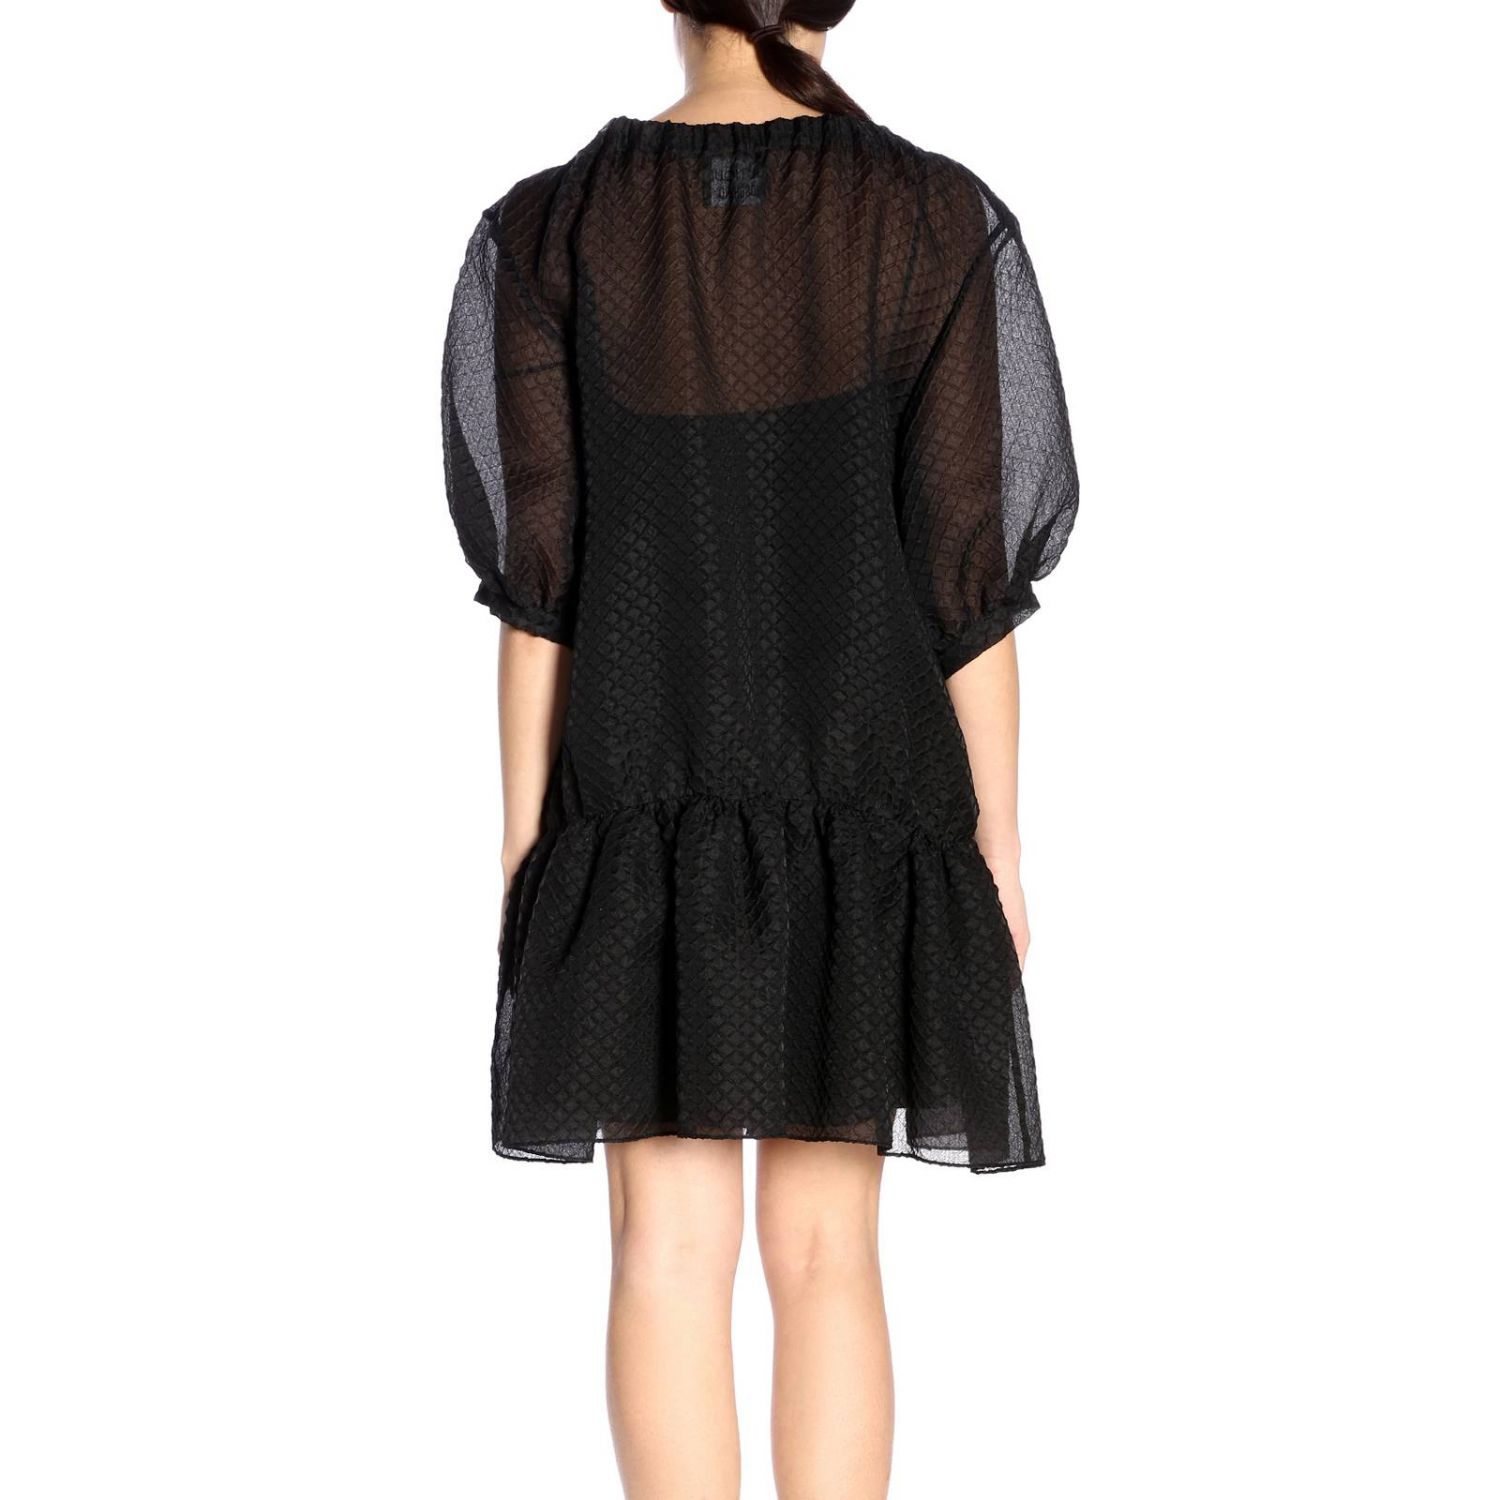 Dress women Boutique Moschino black 3